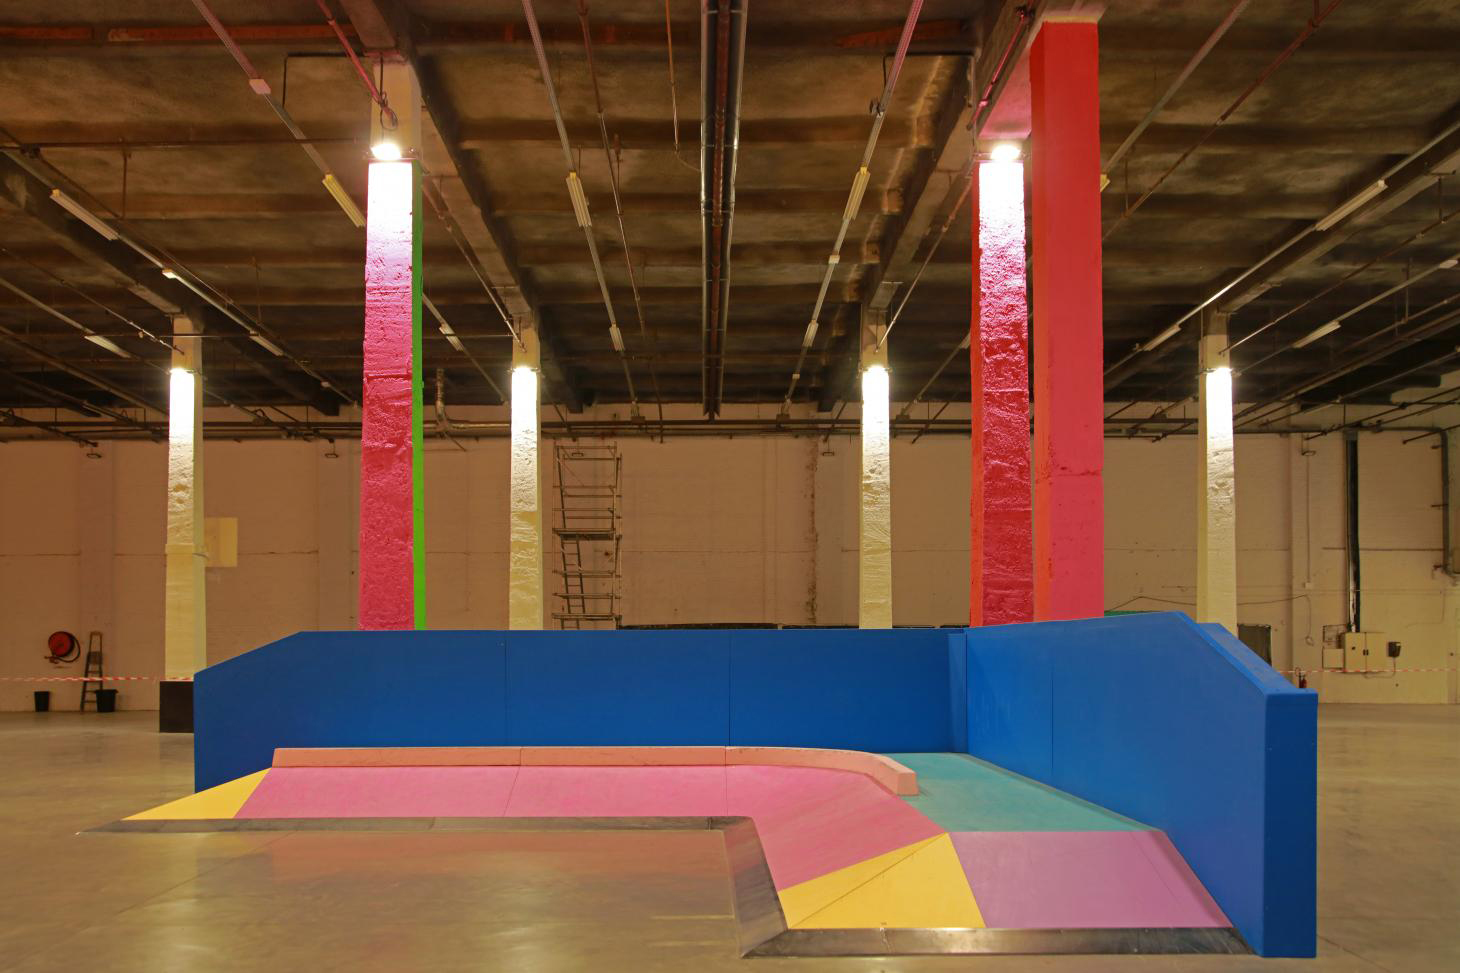 Golden columns and fluorescent paint helped Yinka Ilori turn Roubaix's Halle B warehouse into the Colorama Skatepark.